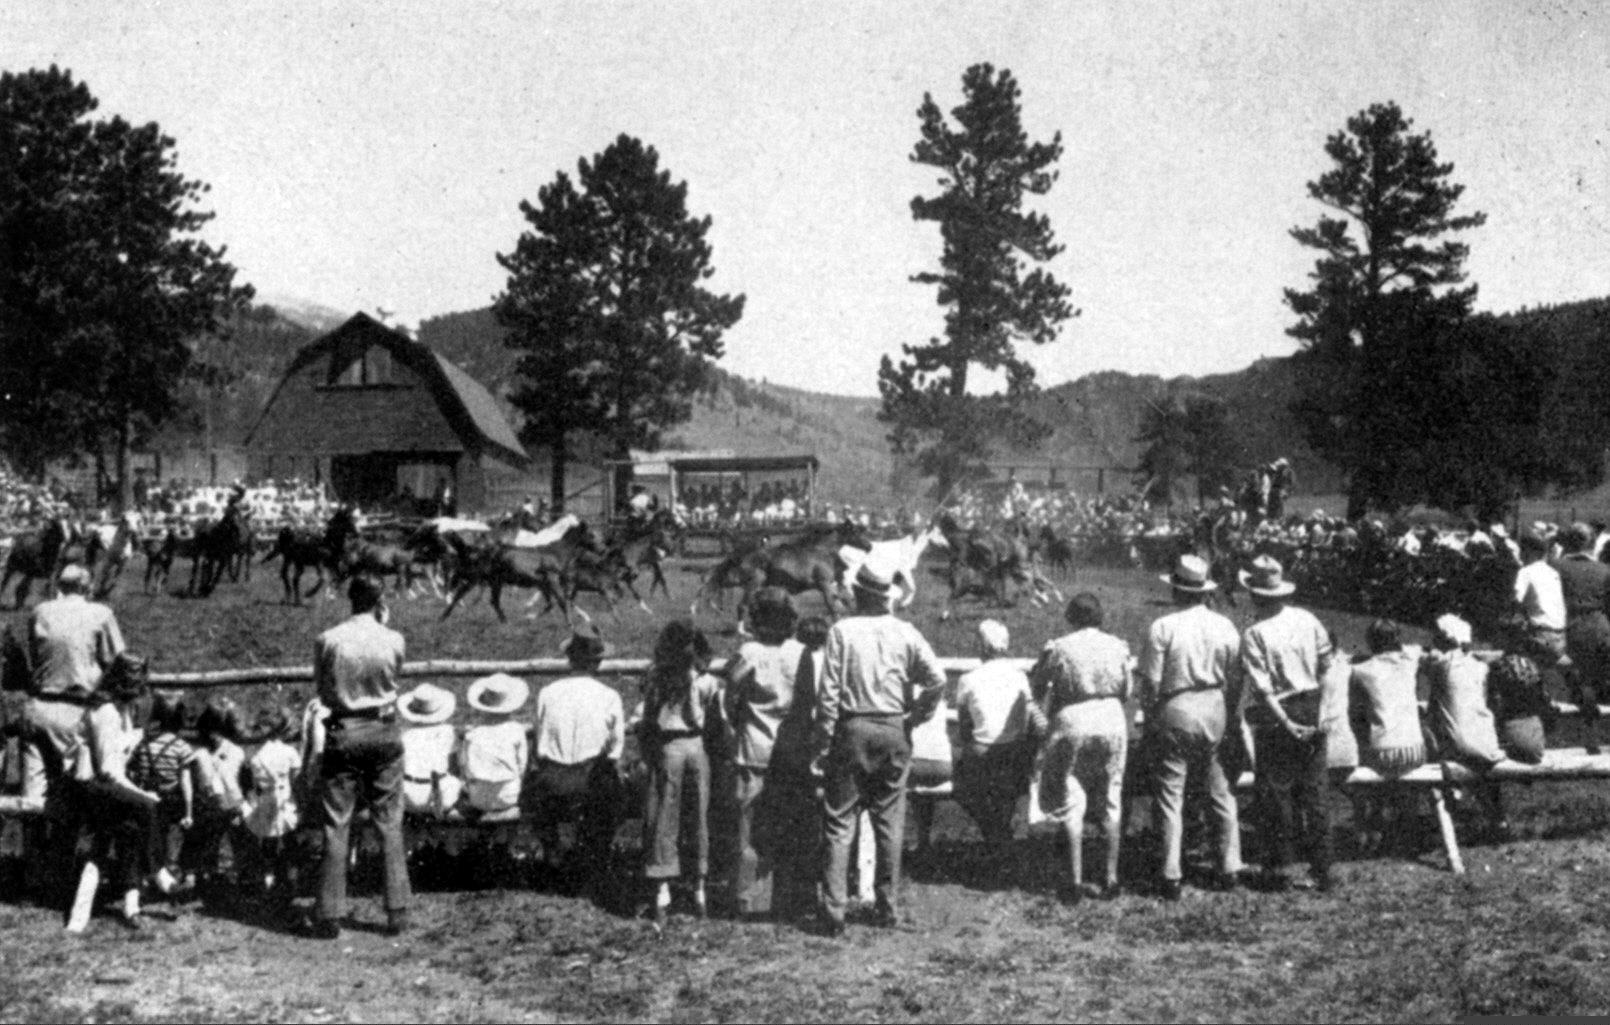 In the 1930s Caribou was the first Arabian horse ranch in America.